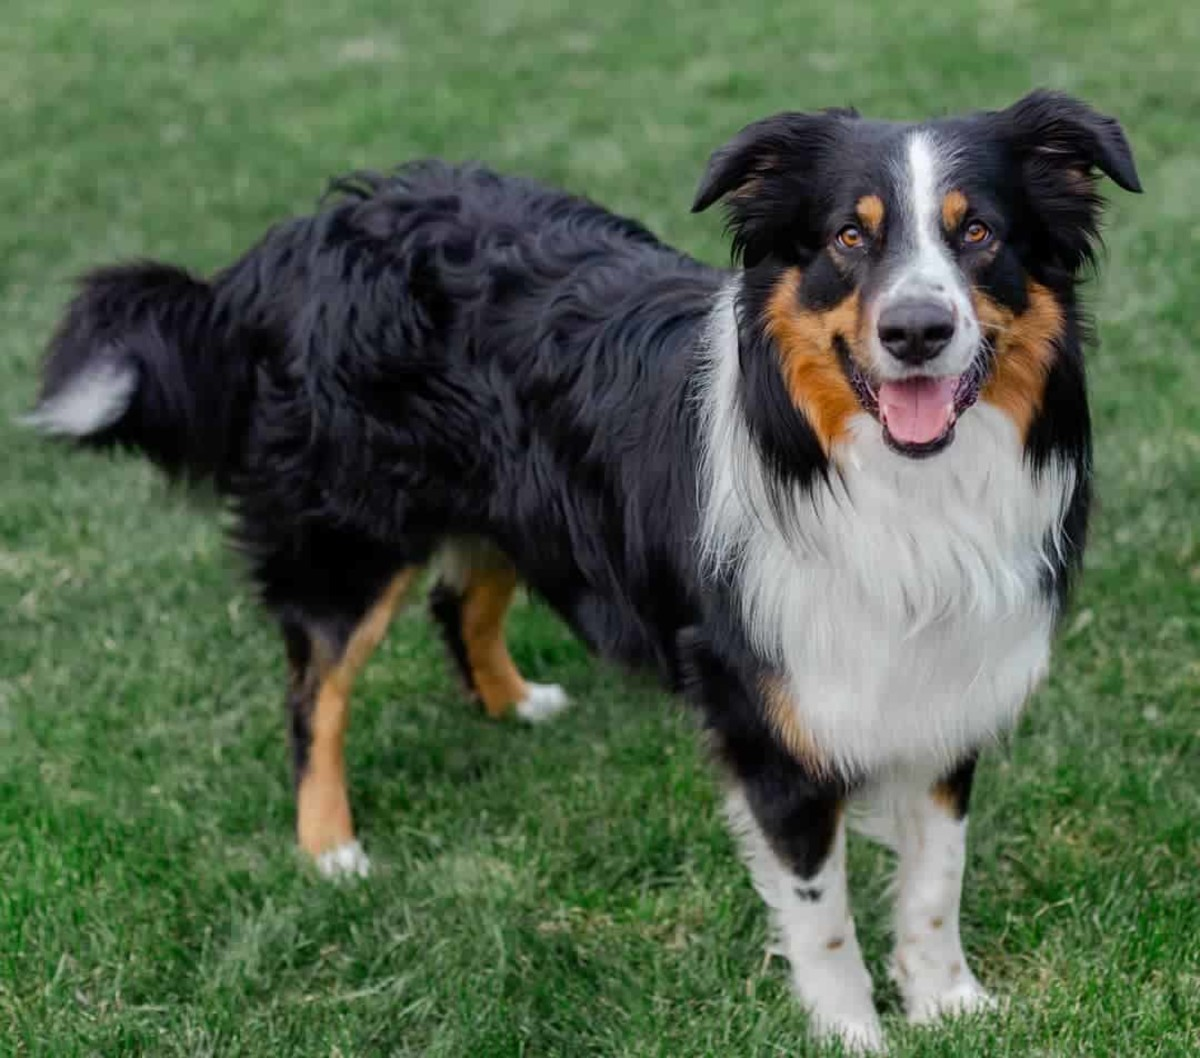 The English Shepherd is a herding dog who loves to work. Their instinct tells them to chase and try to herd everyone they come across.